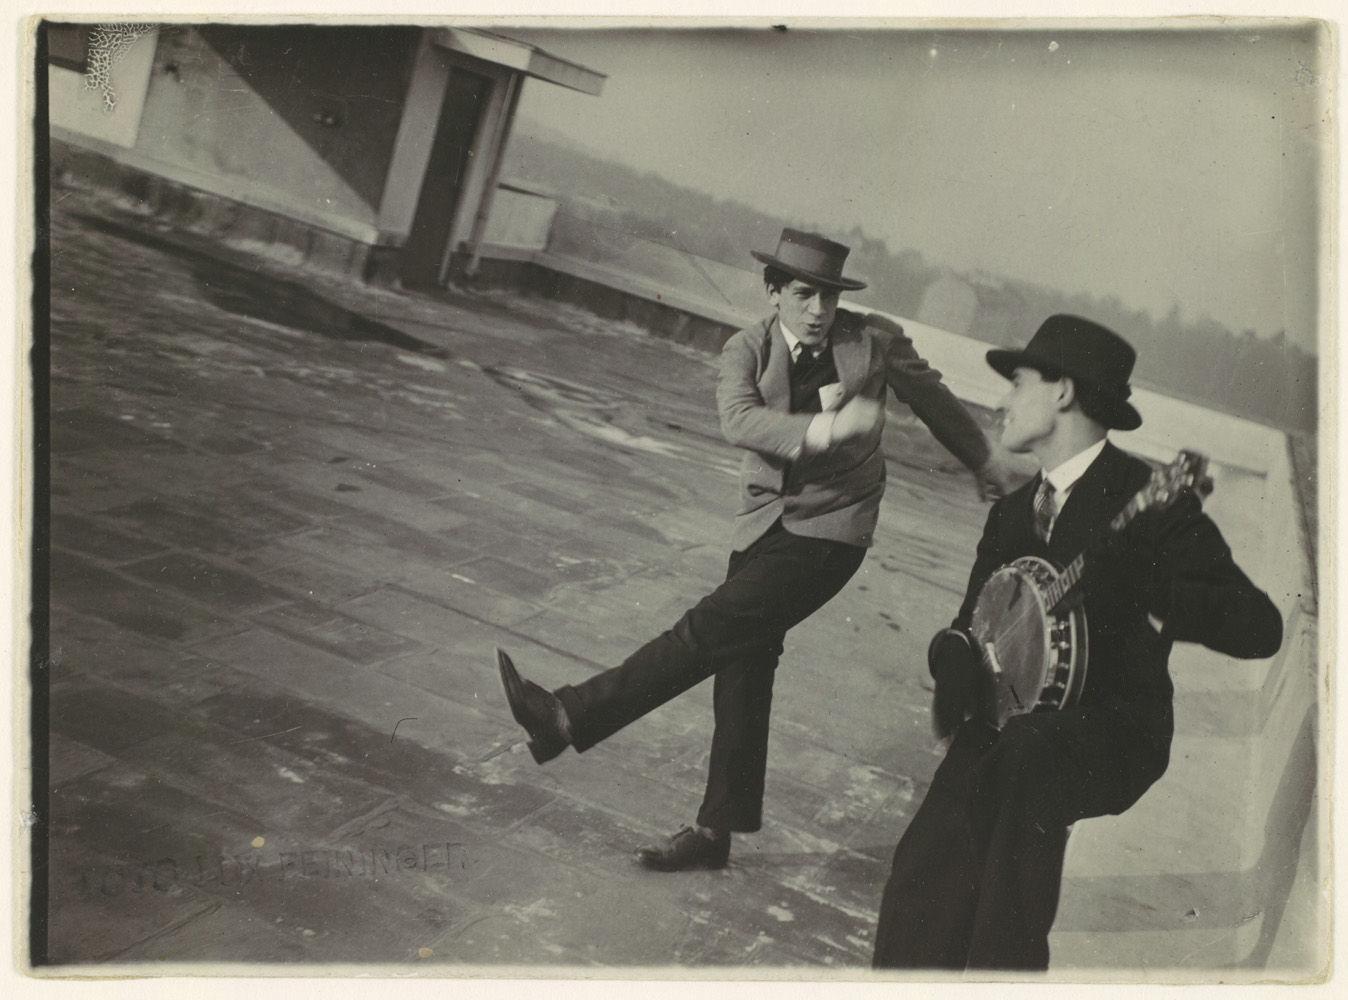 Charleston on the Bauhaus Roof, 1927 by Theodore Lux Feininger.